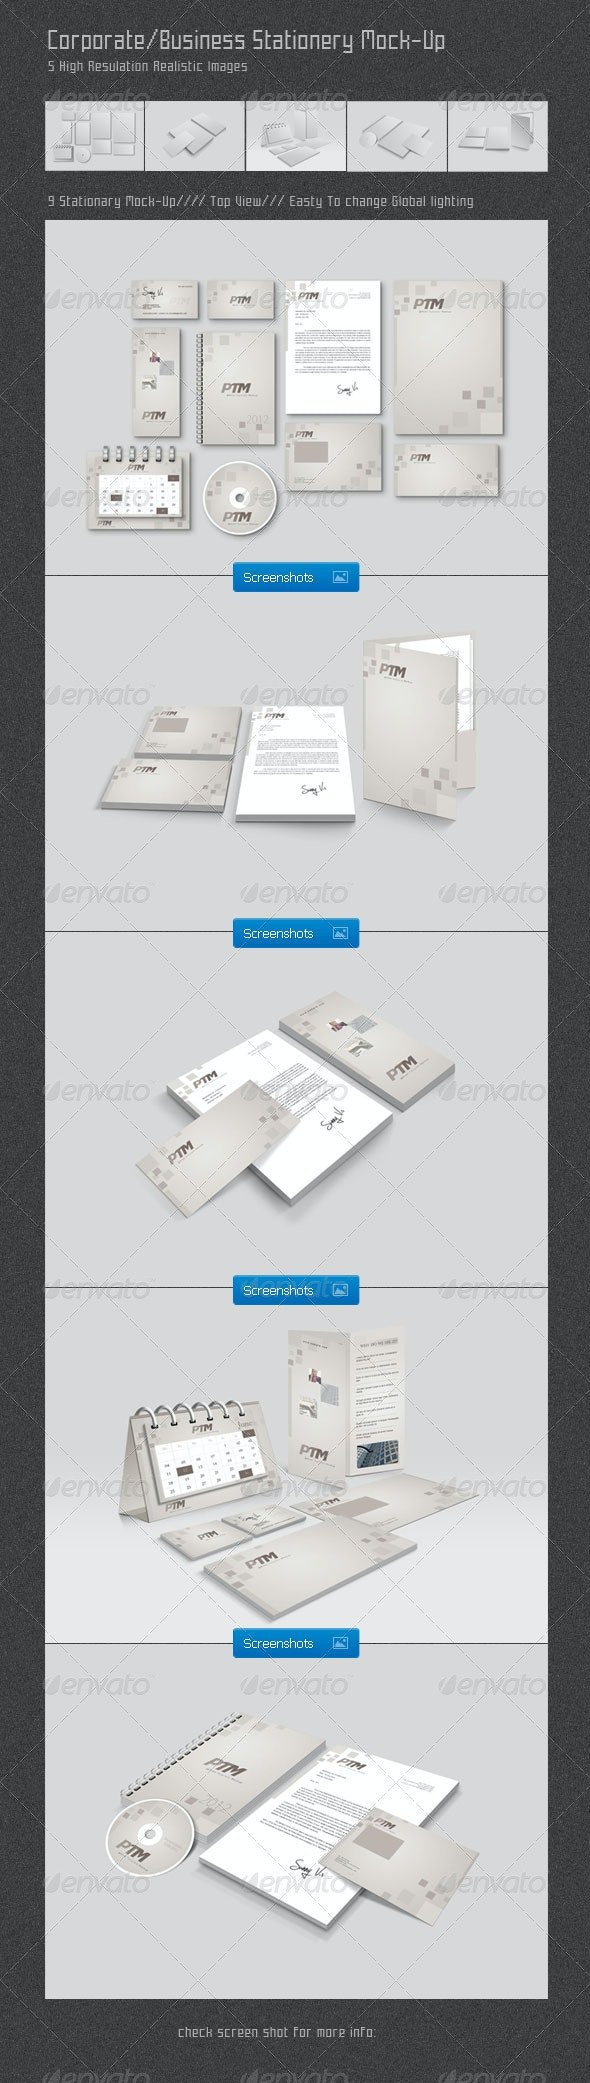 Corporate/Business Stationery Mock-Up - Stationery Print